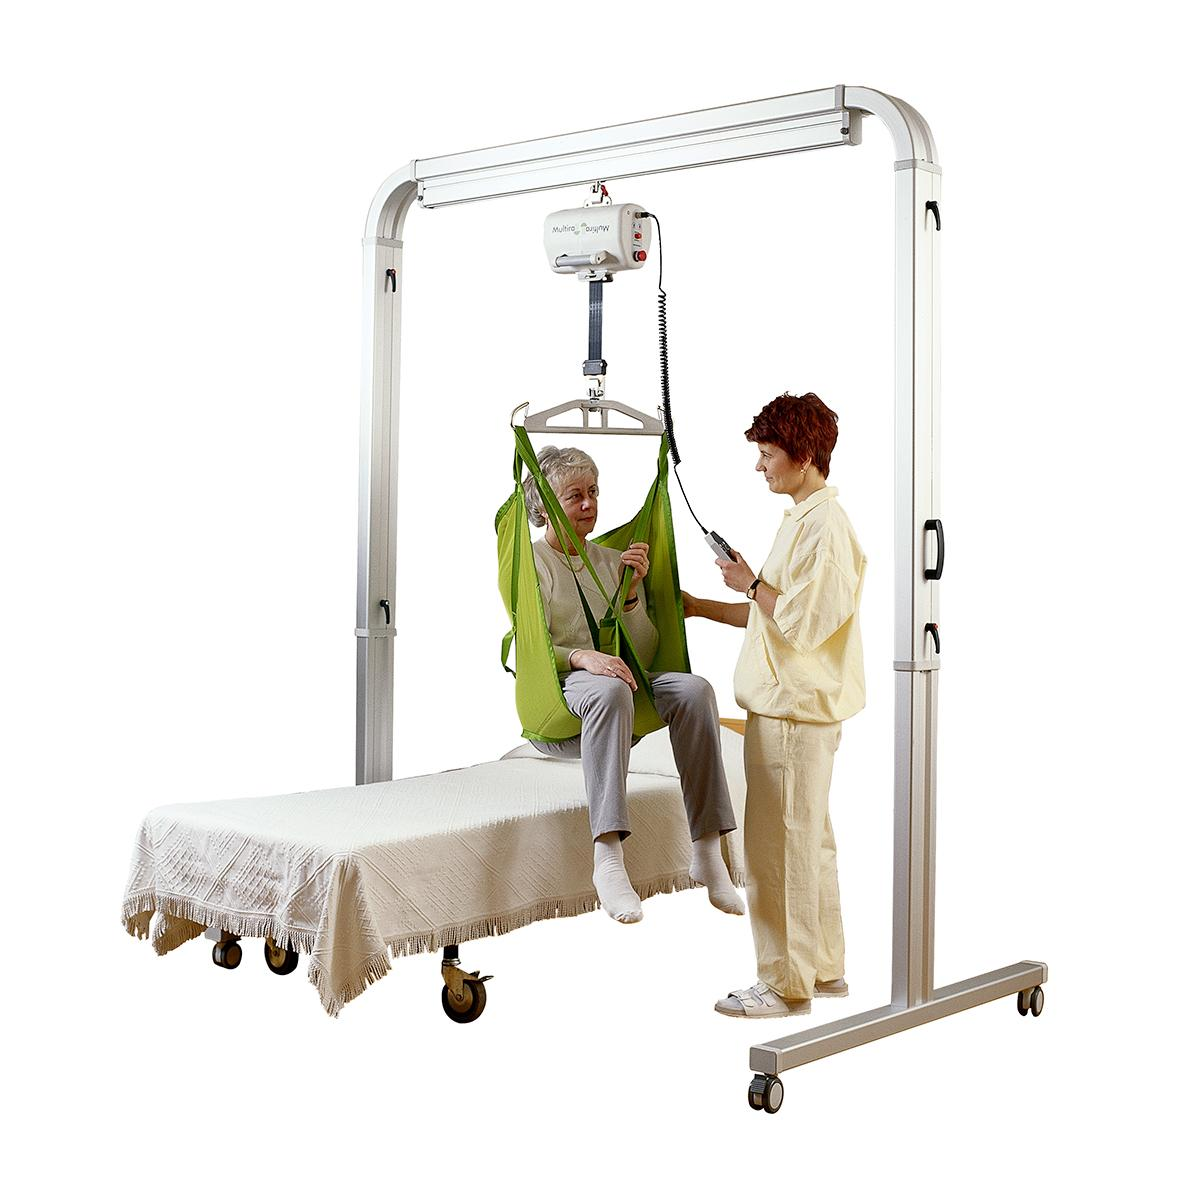 A clinician helps move a patient in a seated position using a FreeSpan straight rail lift system